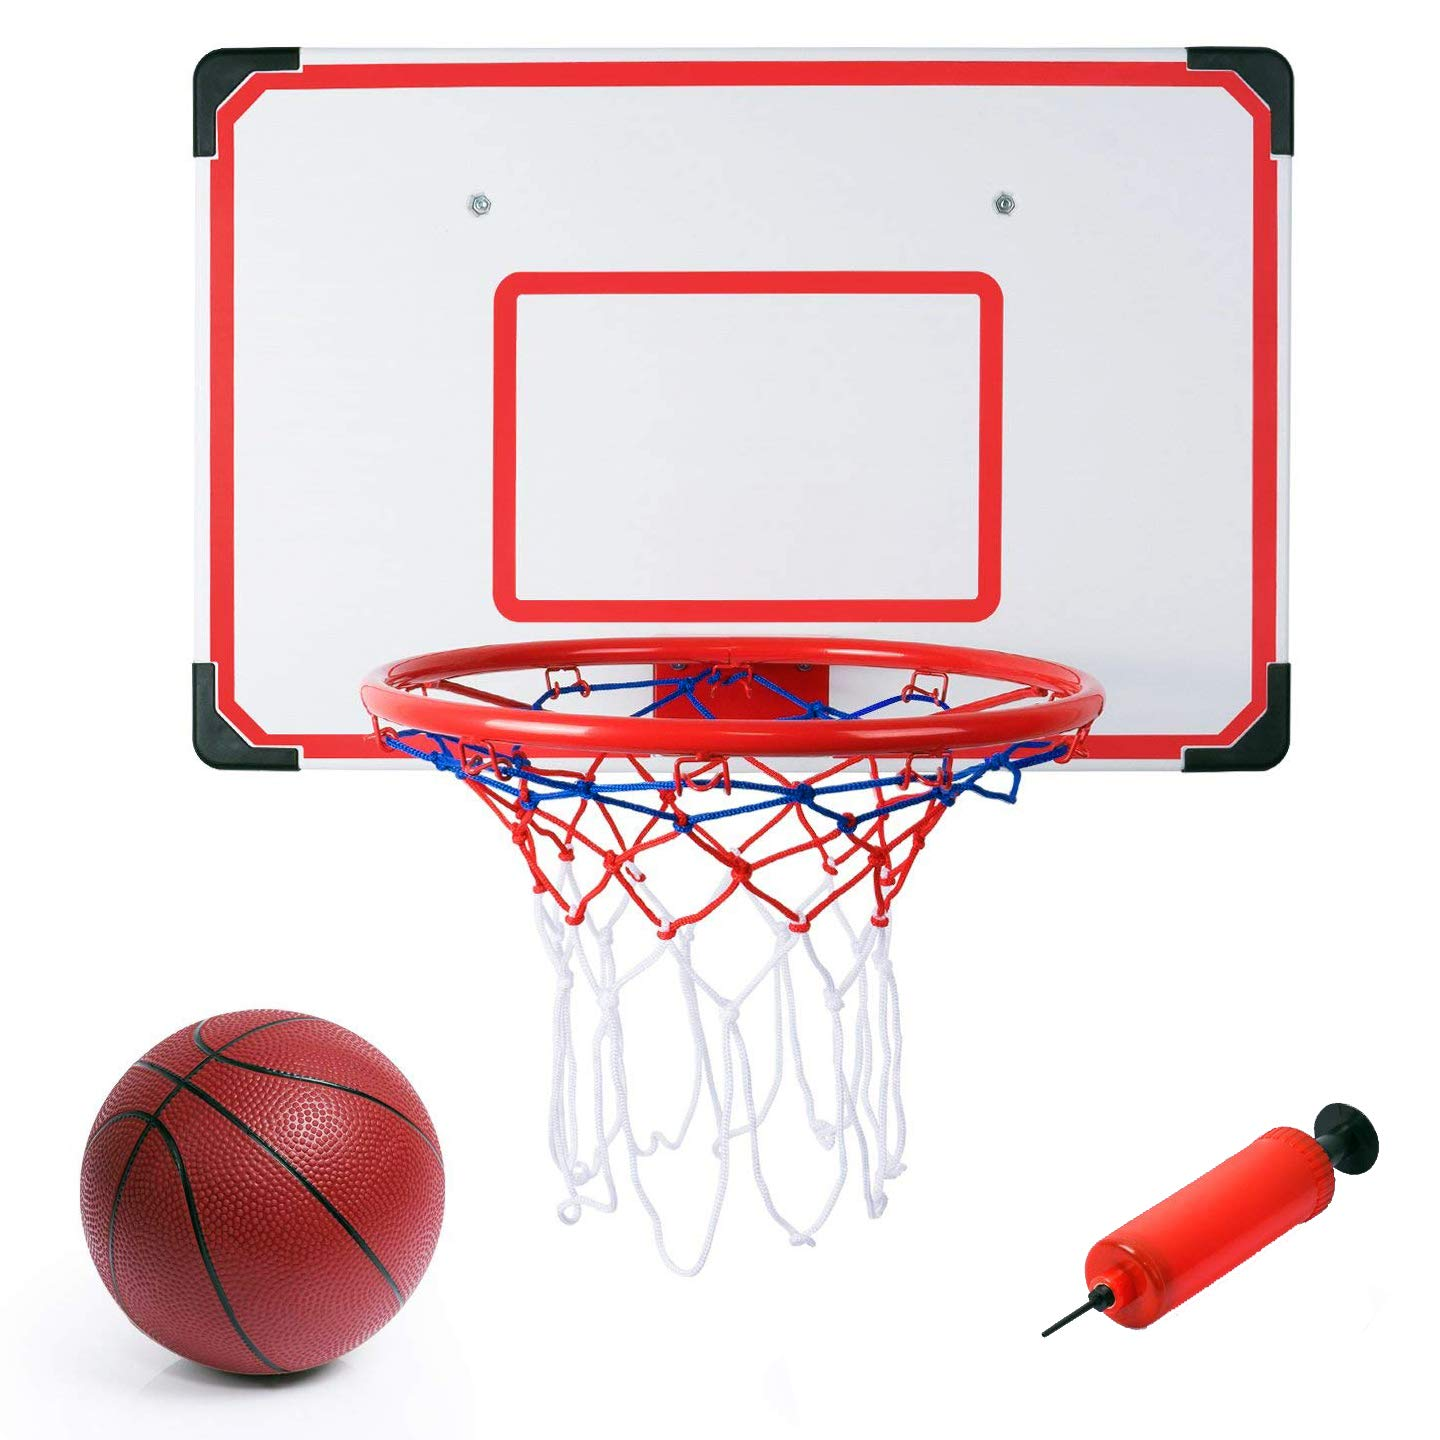 Liberty Imports Indoor and Outdoor XL Big Basketball Hoop Set - 27 inches x 18 inches Backboard + 15 inches Rim